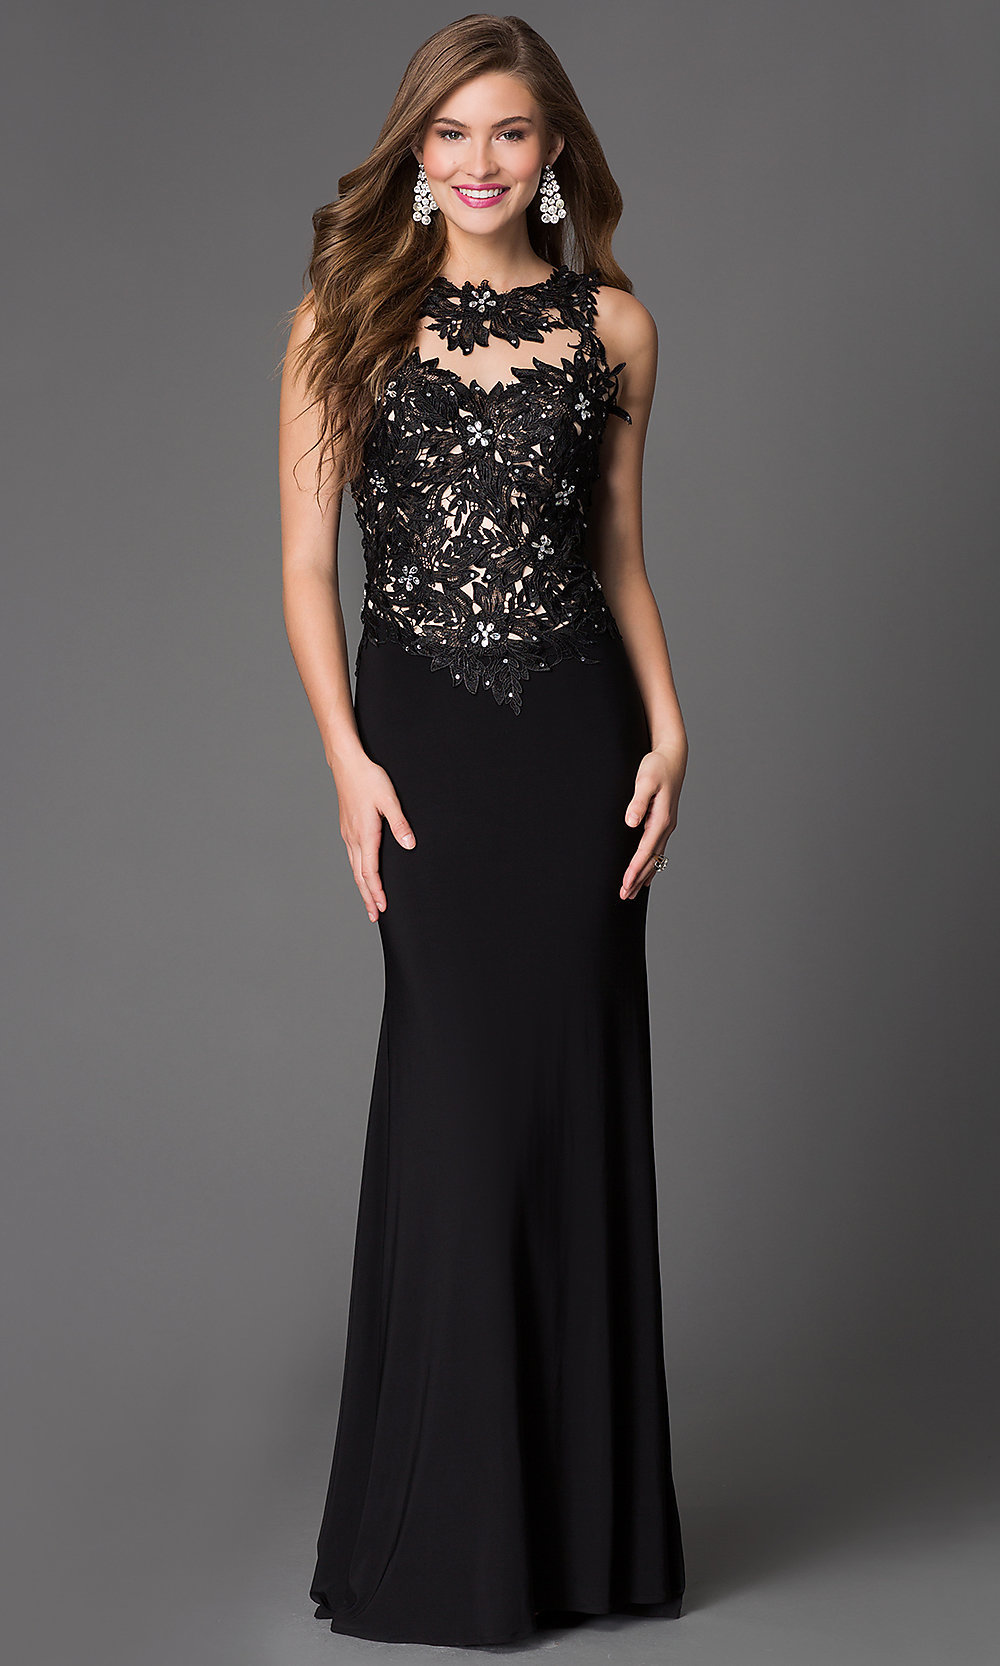 Rongstore Women`s Beaded Lace Little Black Cocktail Dresses $ 69 99 Prime. out of 5 stars R&M Richards. Women's Short Dress with Beaded Waist. from $ 69 99 Prime. out of 5 stars 4. Tanpell. Women's One Shoulder Sequins Beaded Long Evening Bridesmaid Dress. from $ 13 99 Prime. out of 5 stars 3.